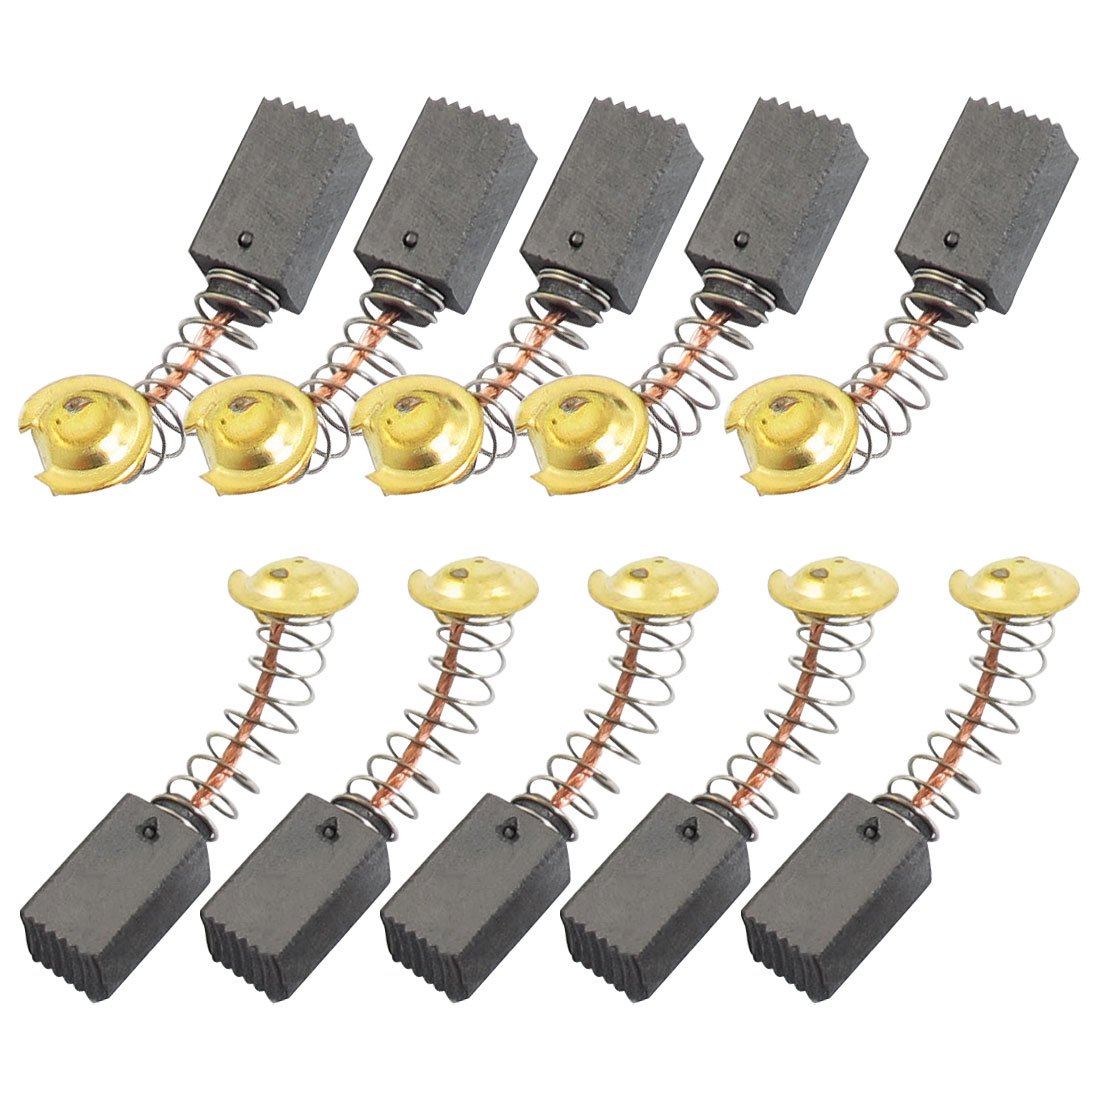 10 Pcs 13mm x 7mm x 6mm Power Tool Motor Parts Carbon Brush